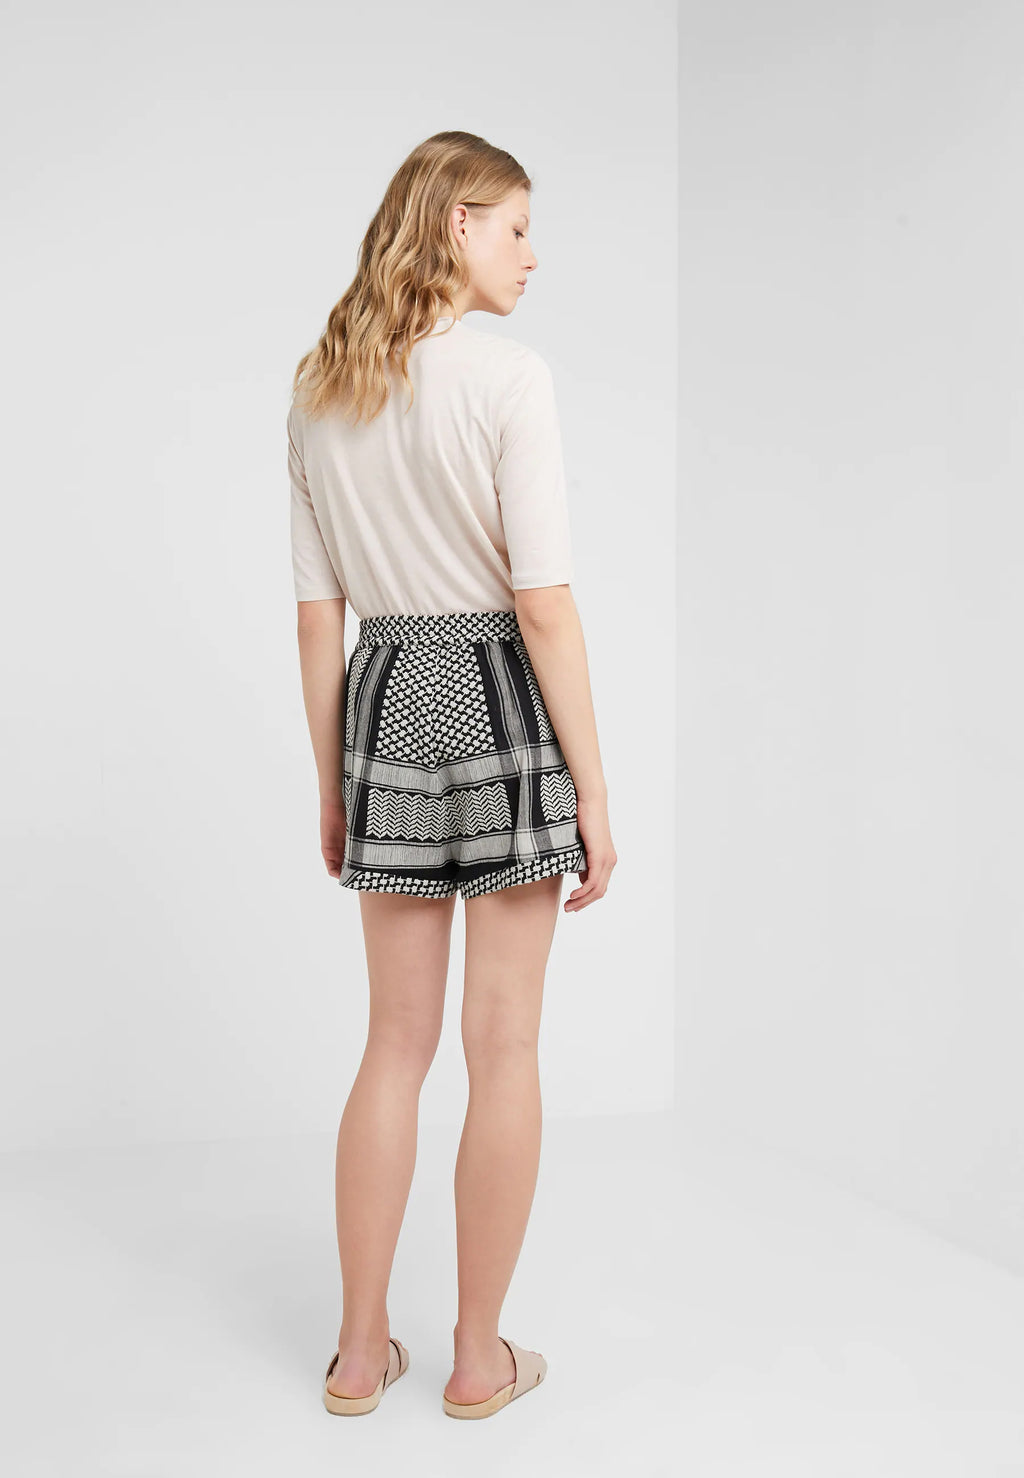 CECILIE COPENHAGEN - Shorts online at PAYA boutique